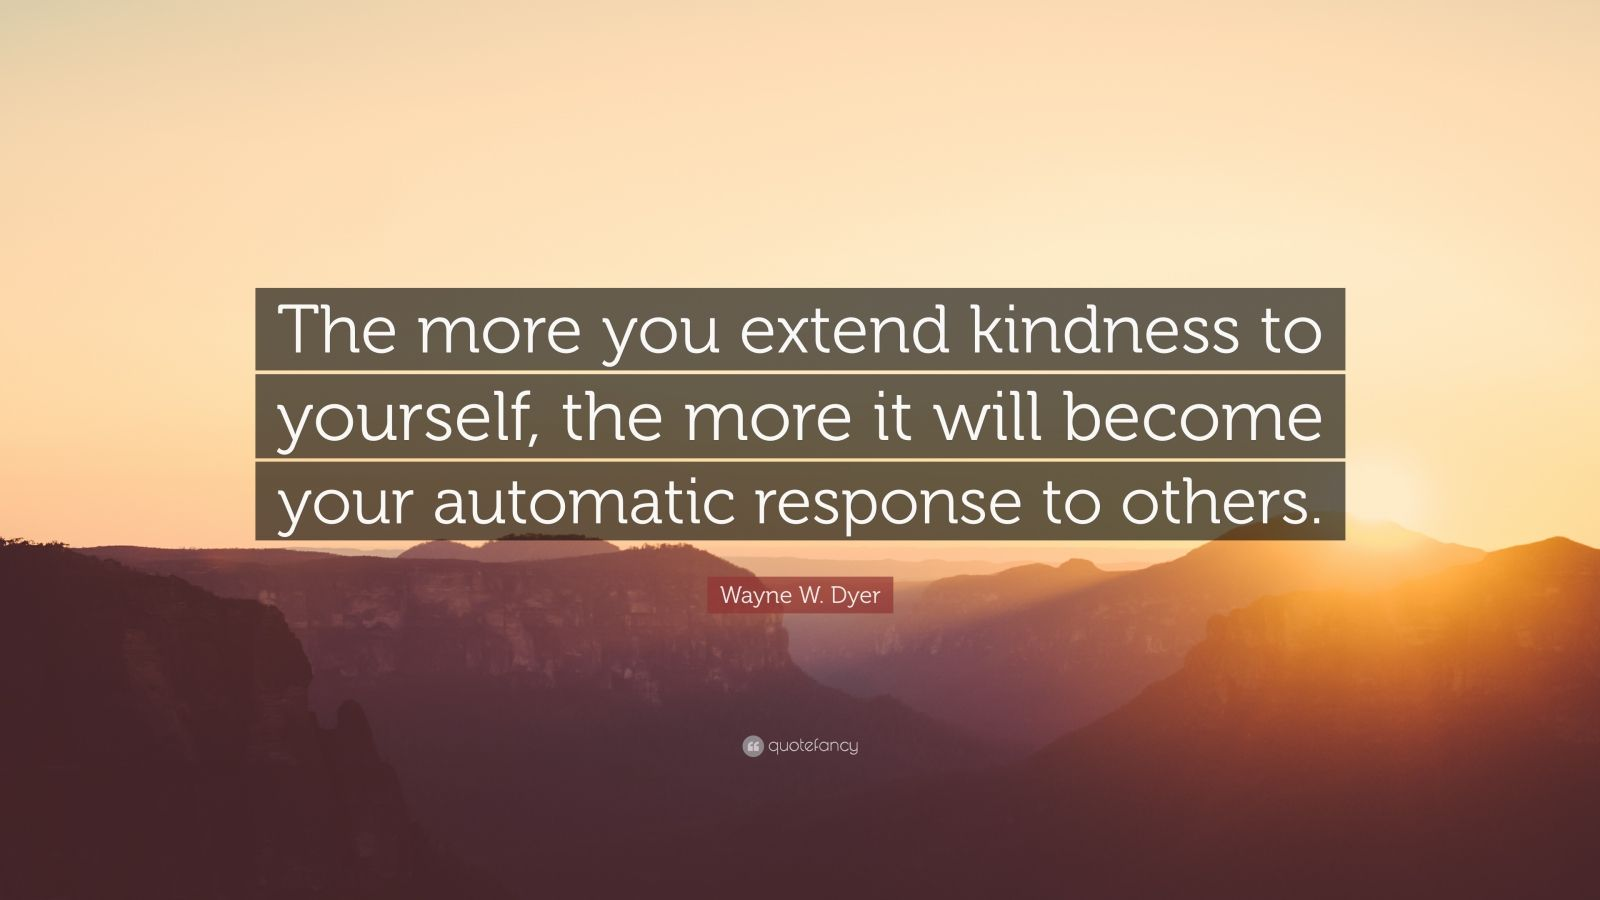 """Wayne W. Dyer Quote: """"The more you extend kindness to yourself, the more it will become your automatic response to others."""""""